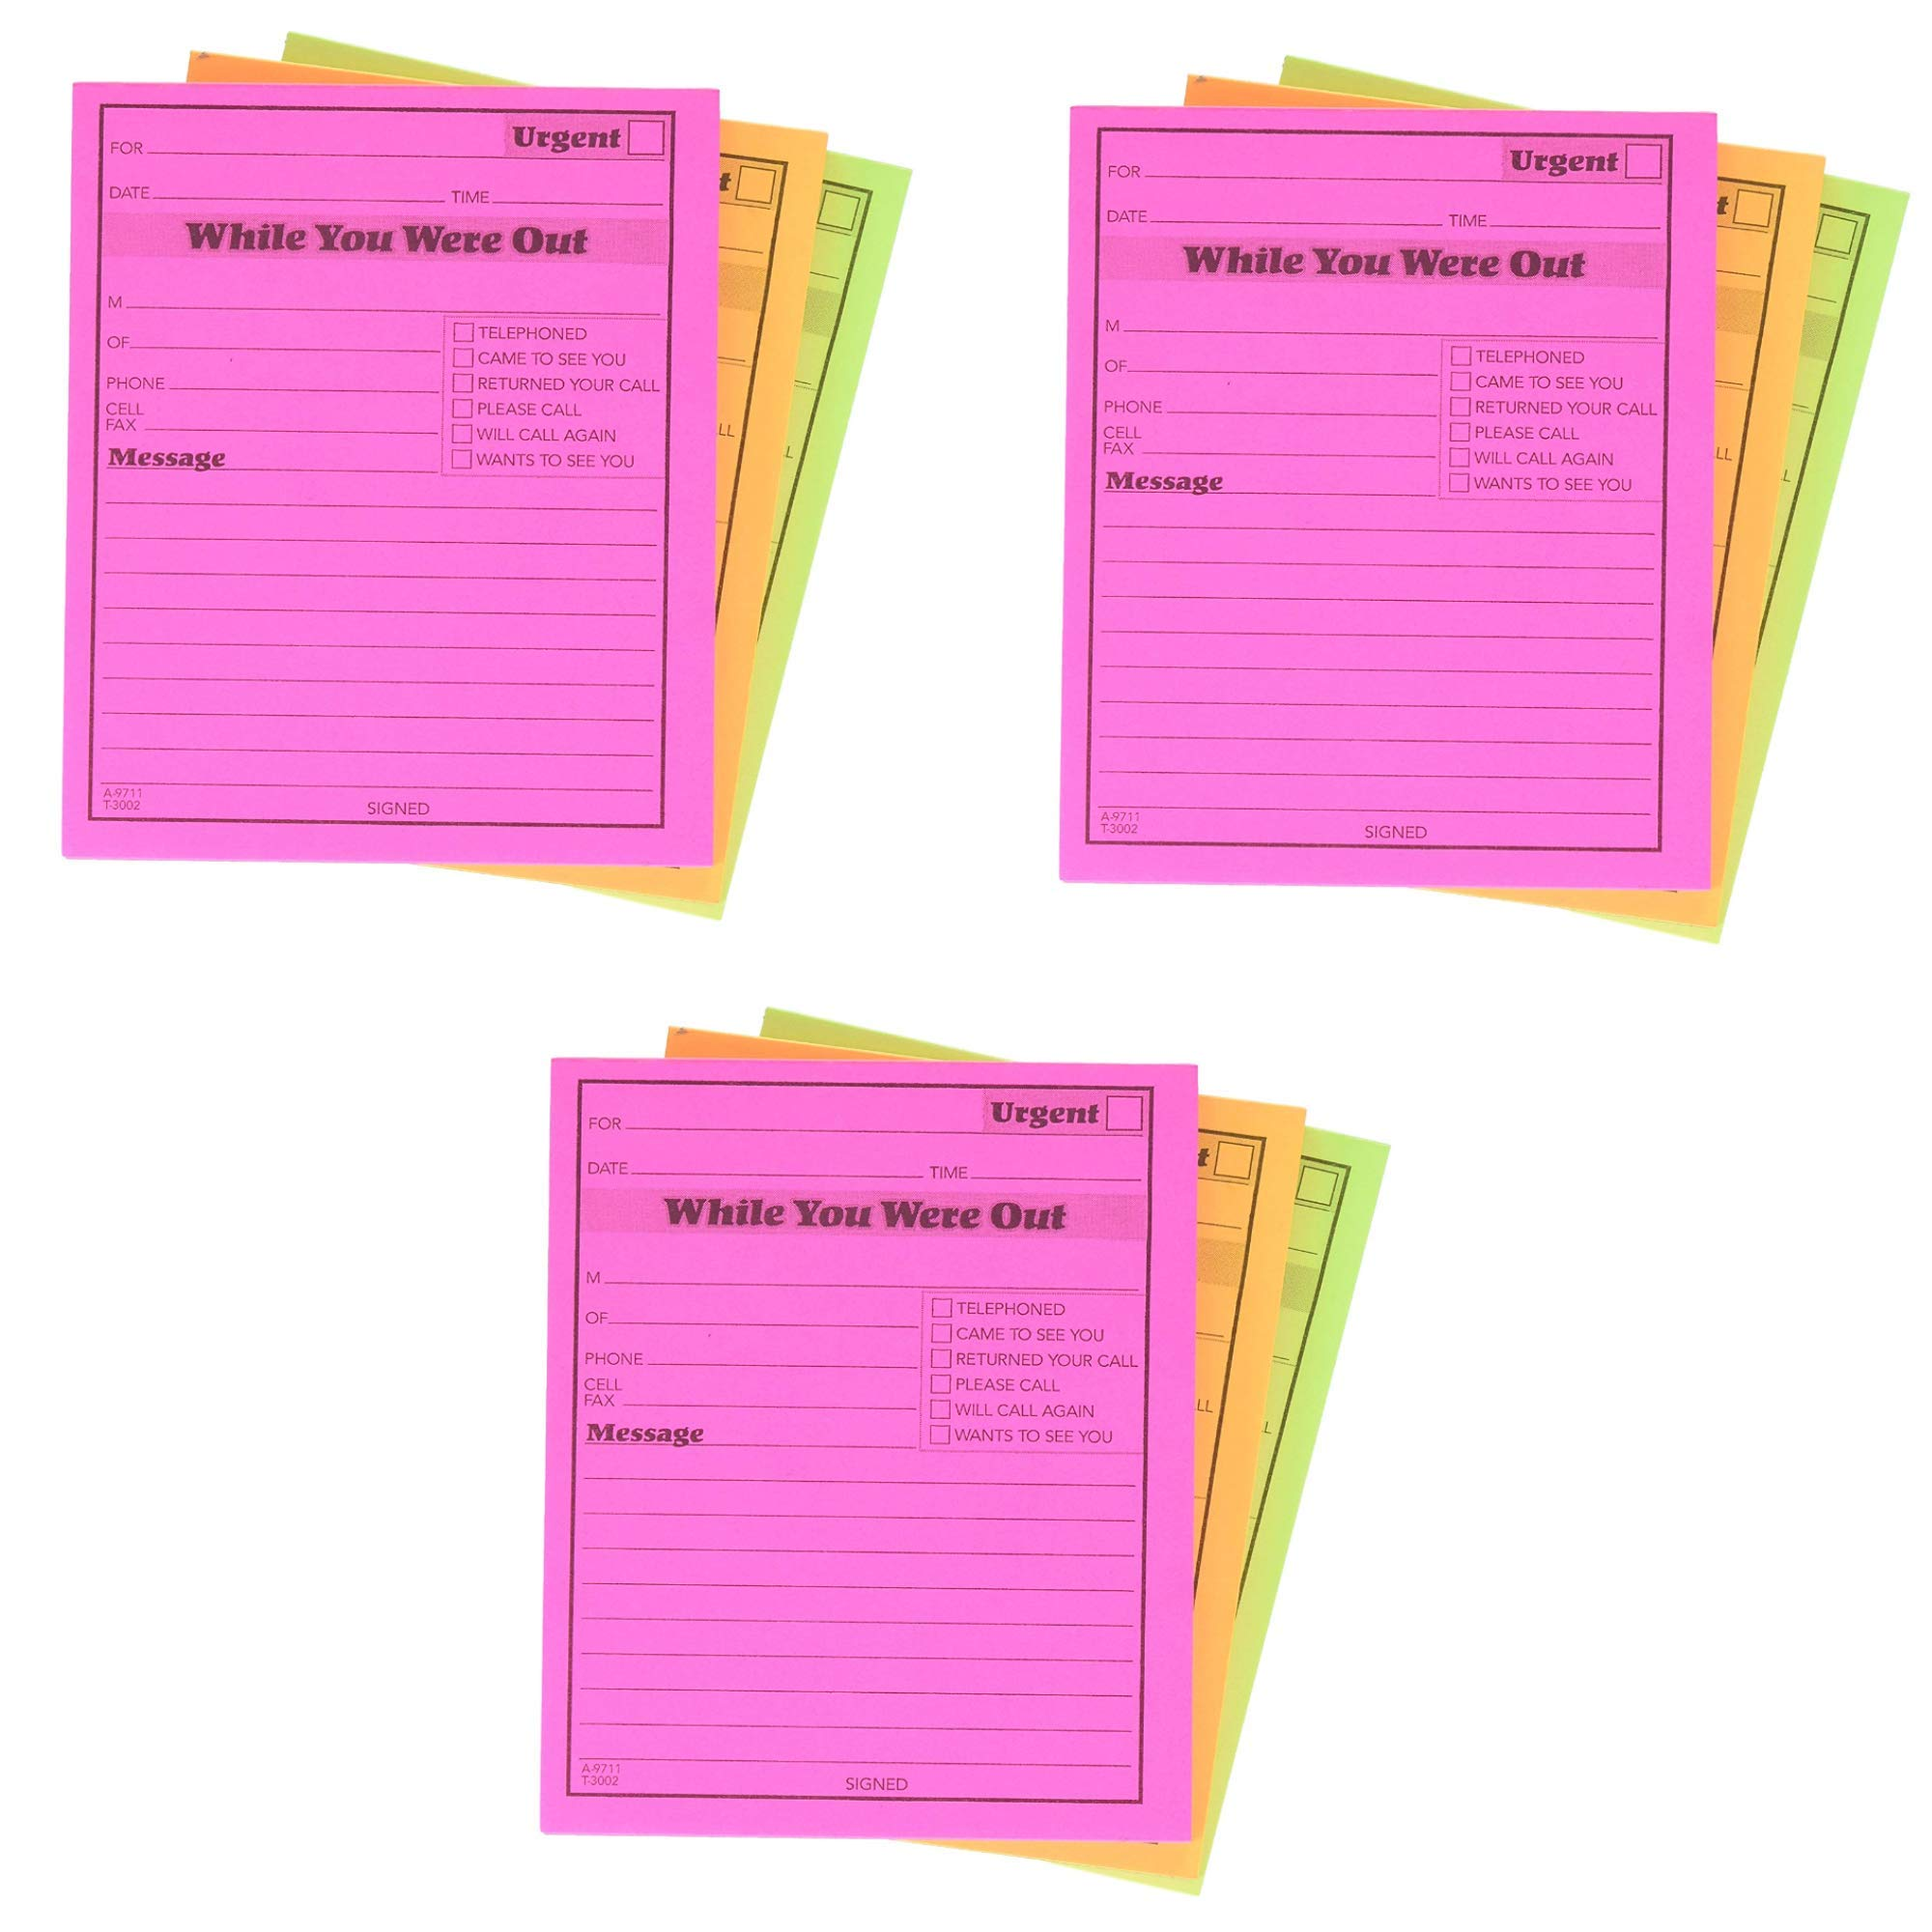 Adams While You were Out Pads, 4.25 x 5.25 Inches, Assorted Neon Colors, 50 Sheets/Pad (18-Pack) (9711NEON) by Adams